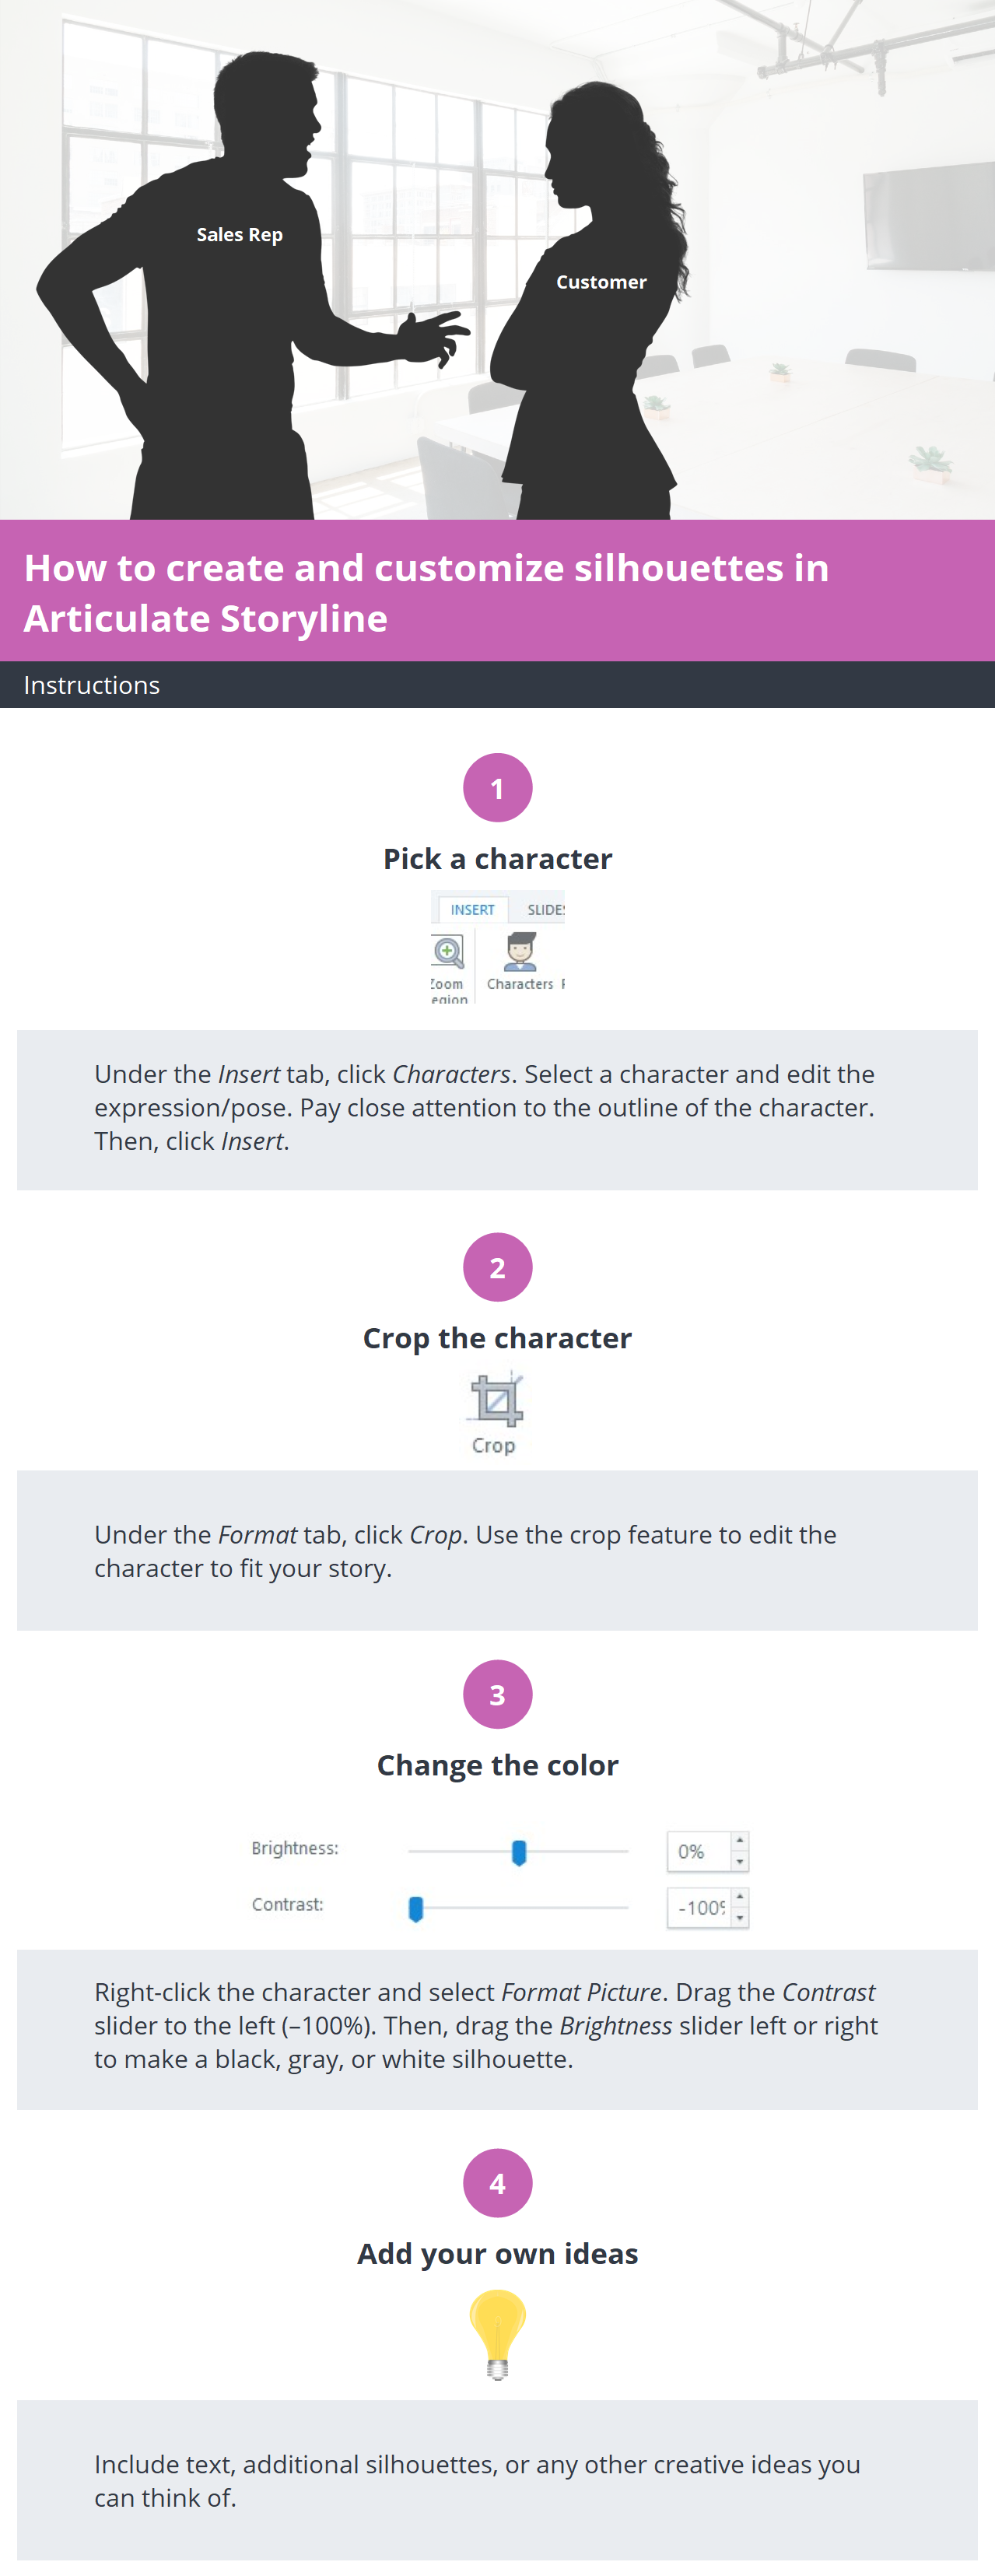 Create and customize silhouettes in Articulate Storyline